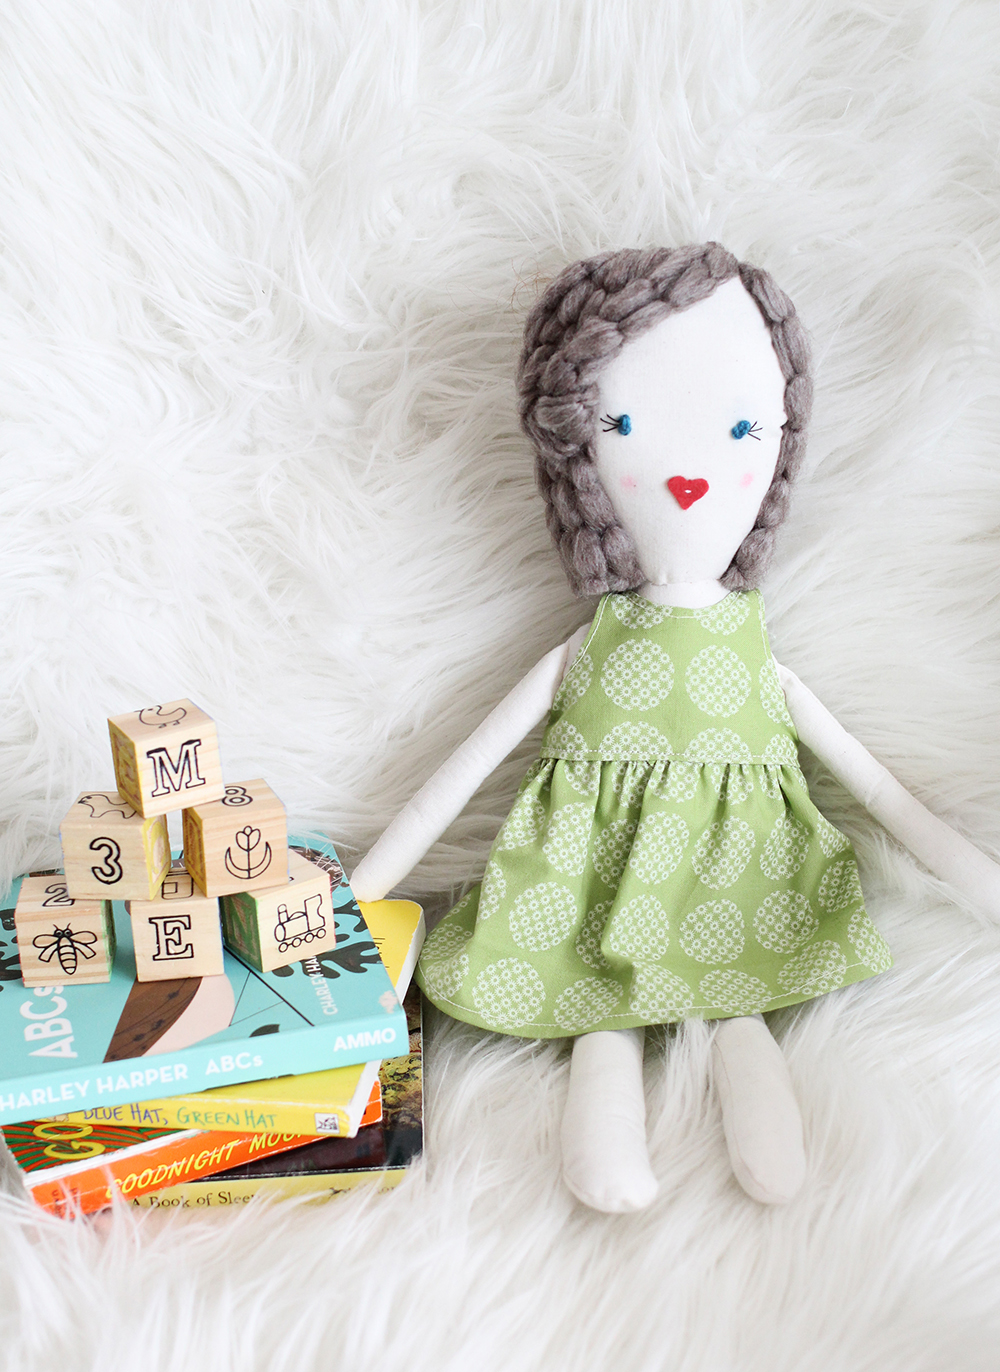 Darling rag doll (just like the kind I use to make with my grandma)